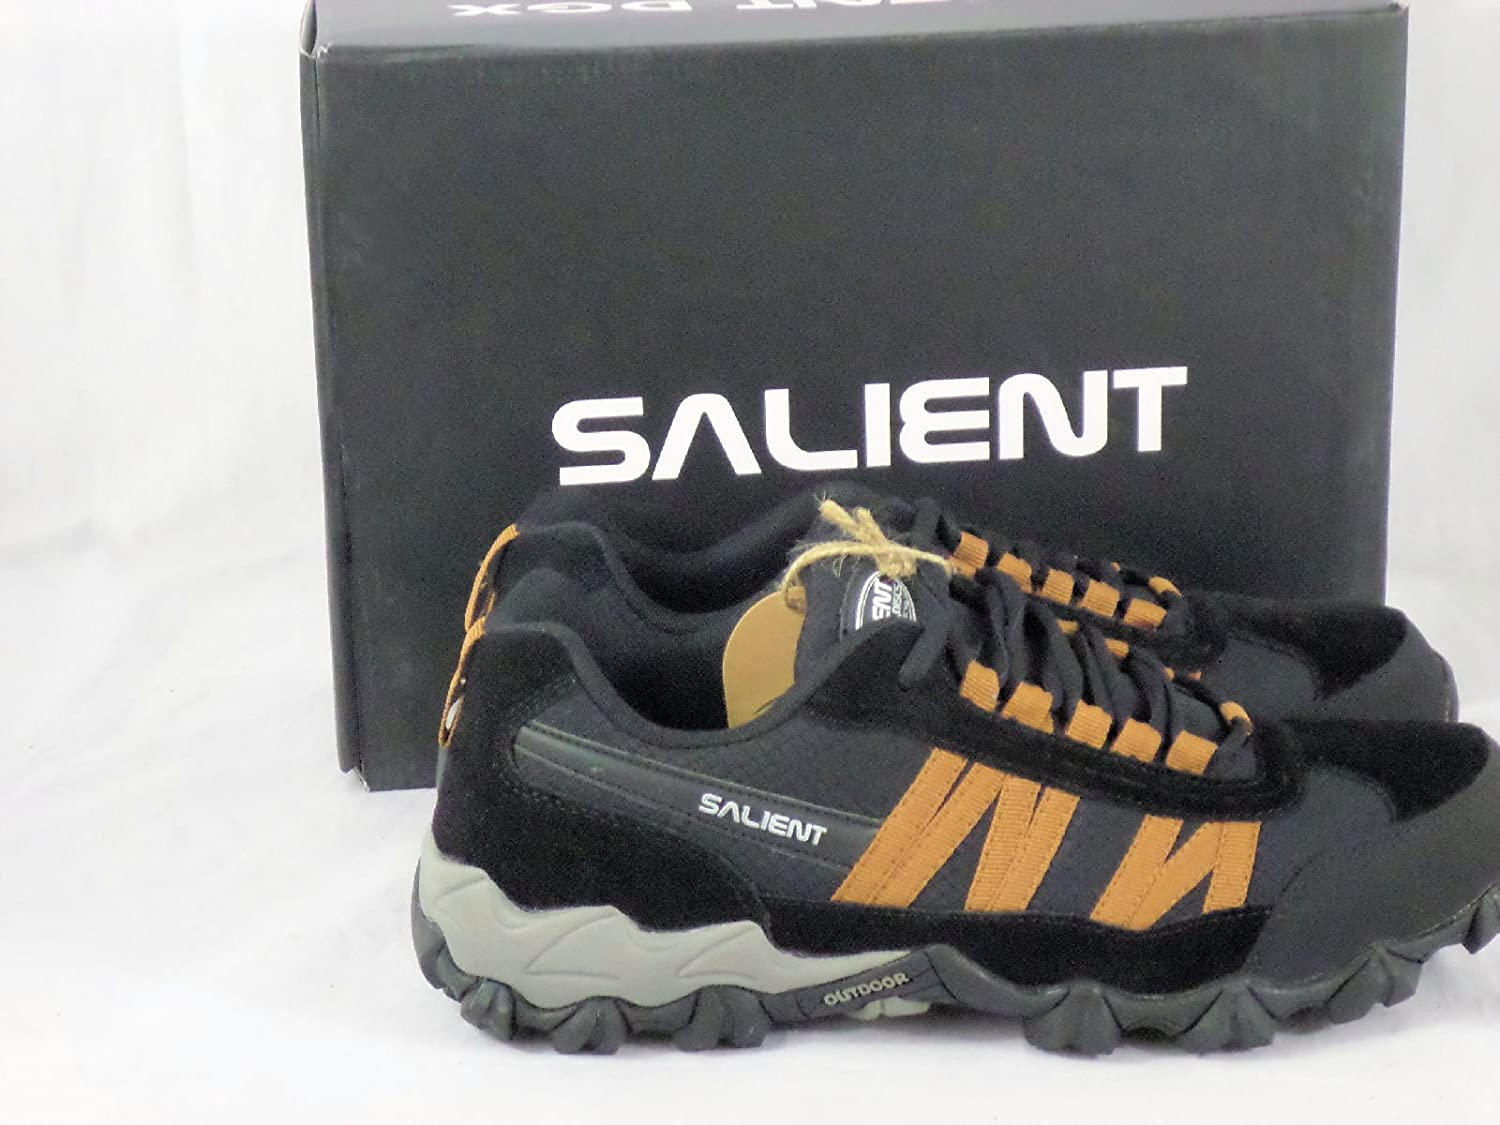 3dcdac5f2465a Amazon.com   Disc Golf Shoes with Salient Disc Logo   Sports   Outdoors